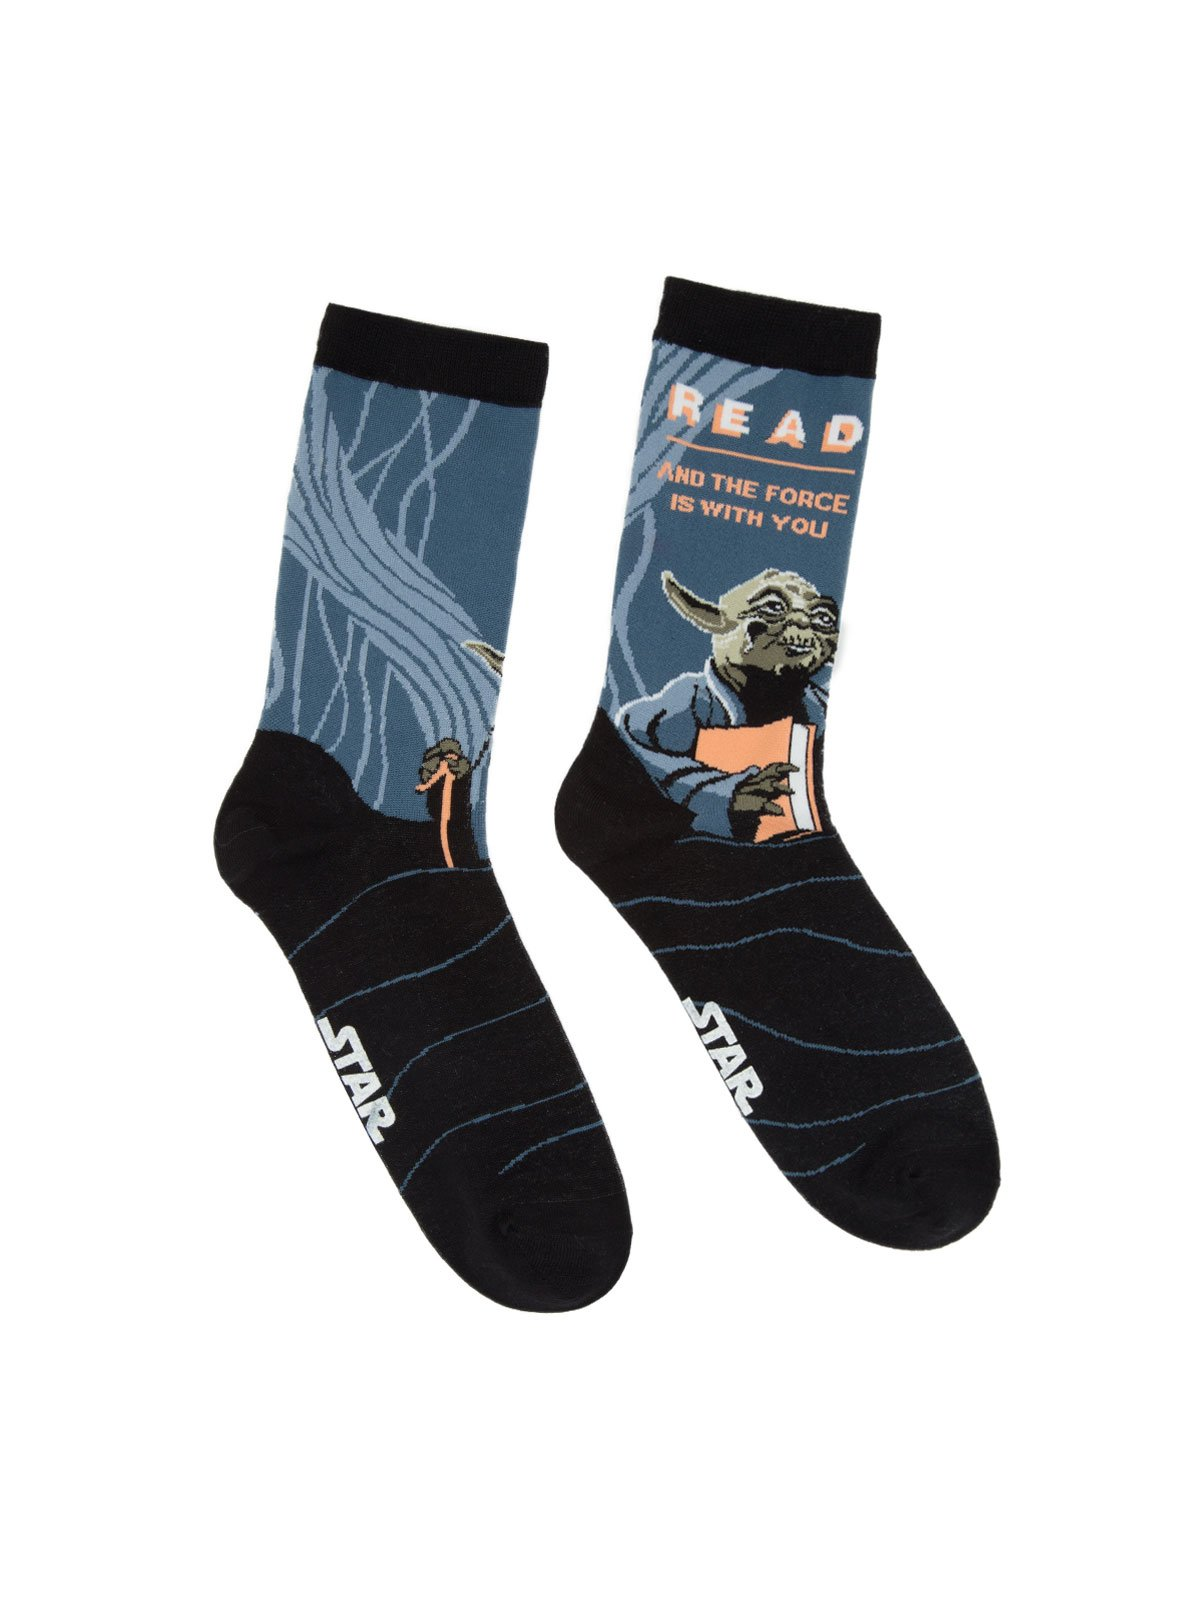 Read and the Force is With You Socks